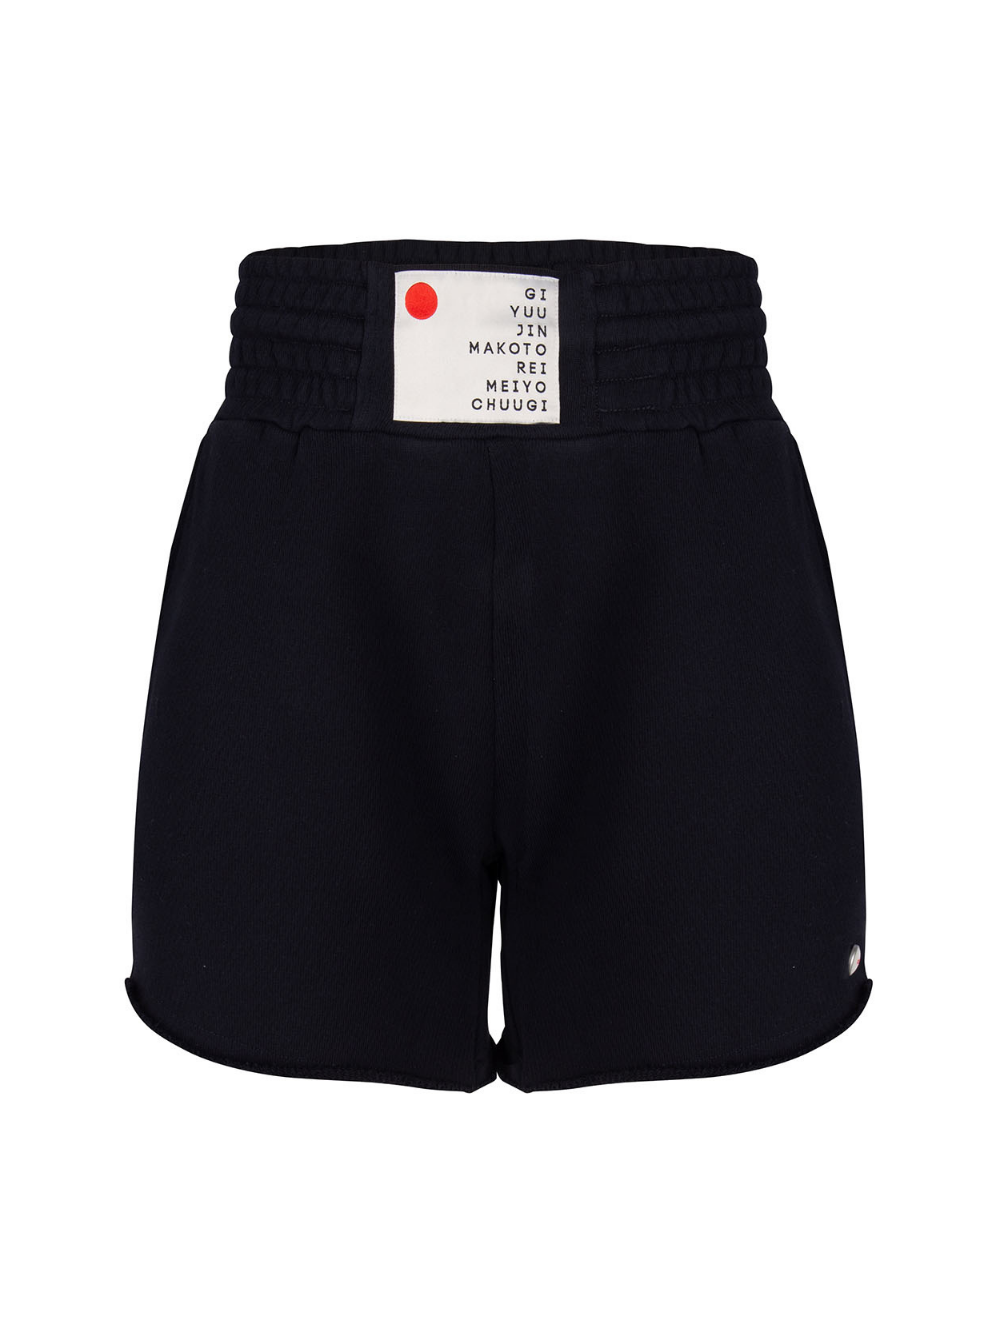 tshi kan fight shorts black once we were warriors O3W